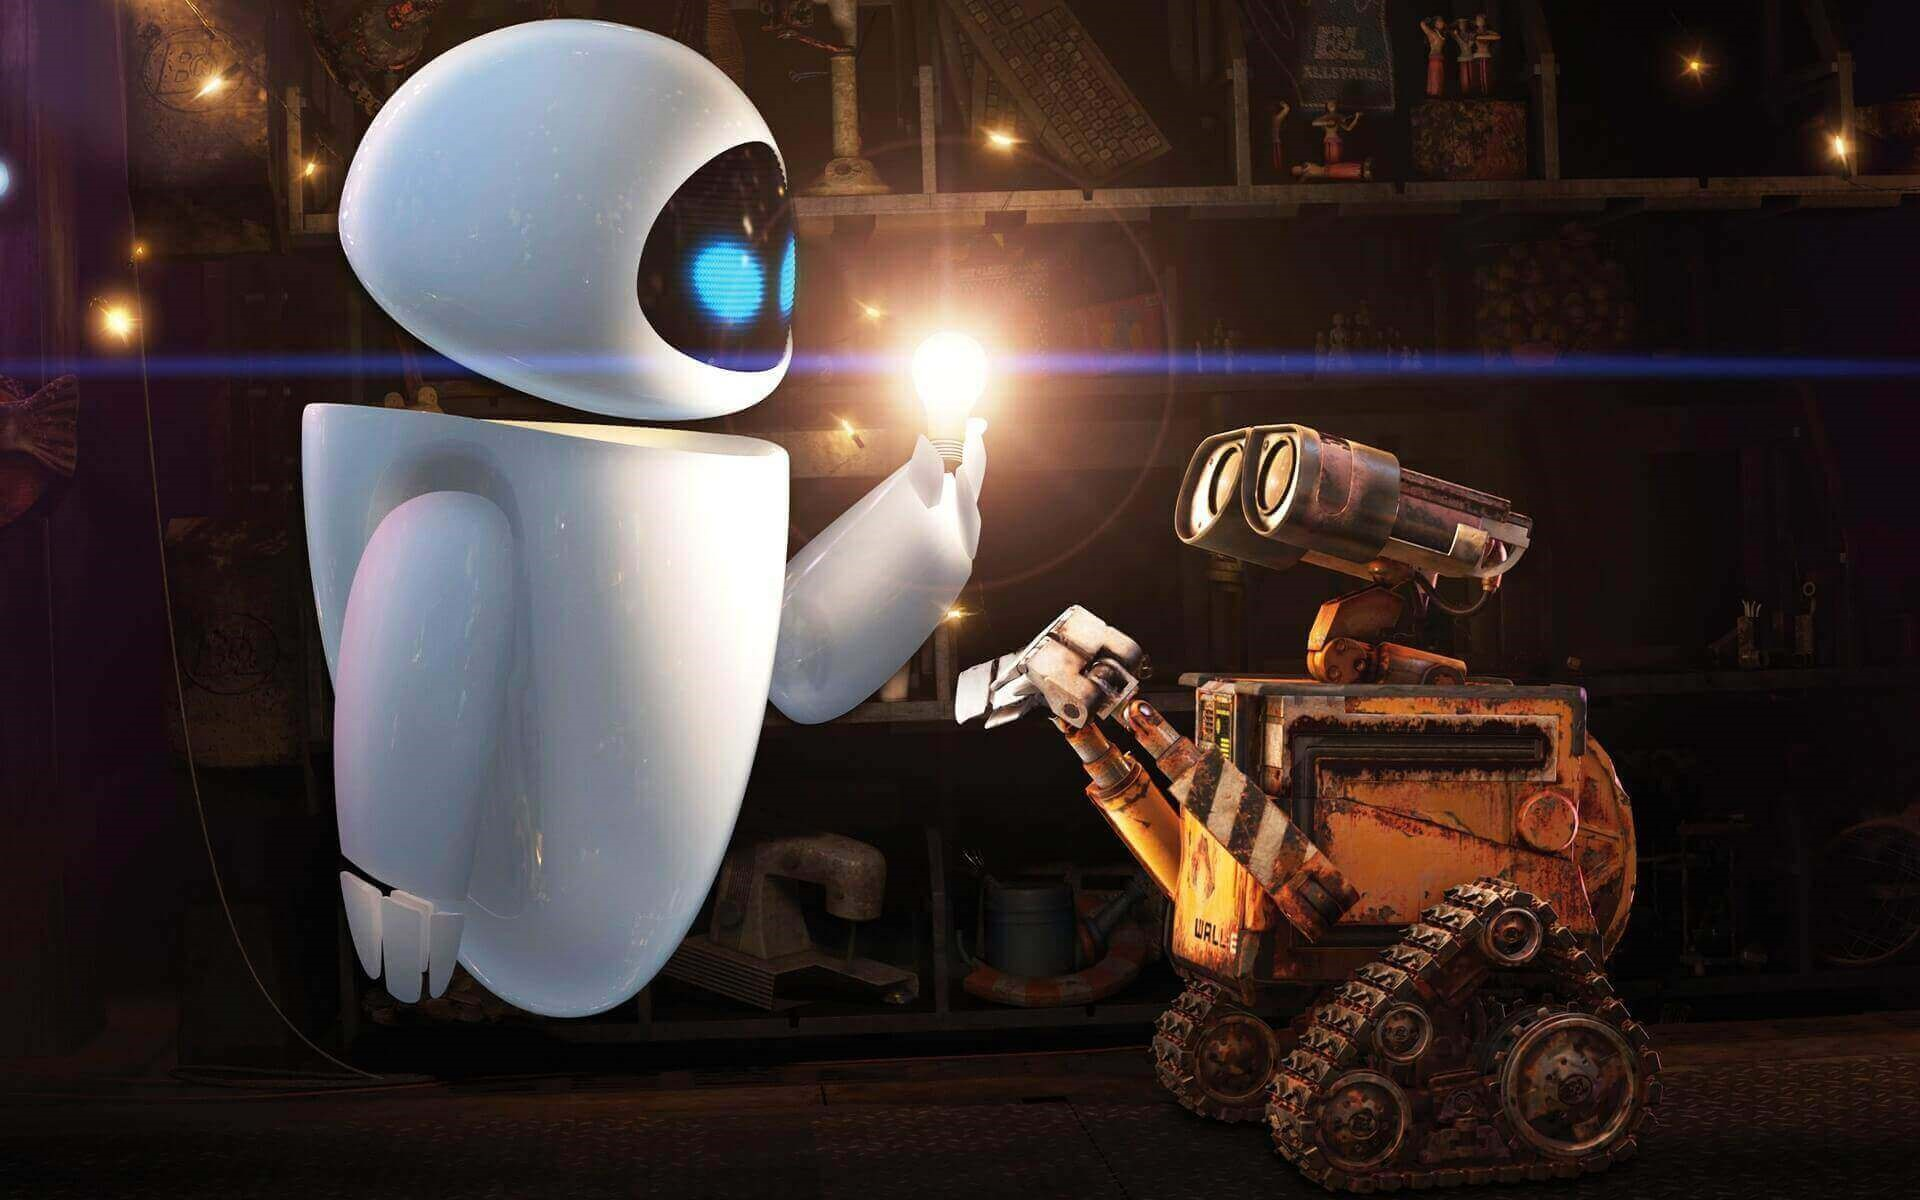 Eve and Wall-E (Wall-E)